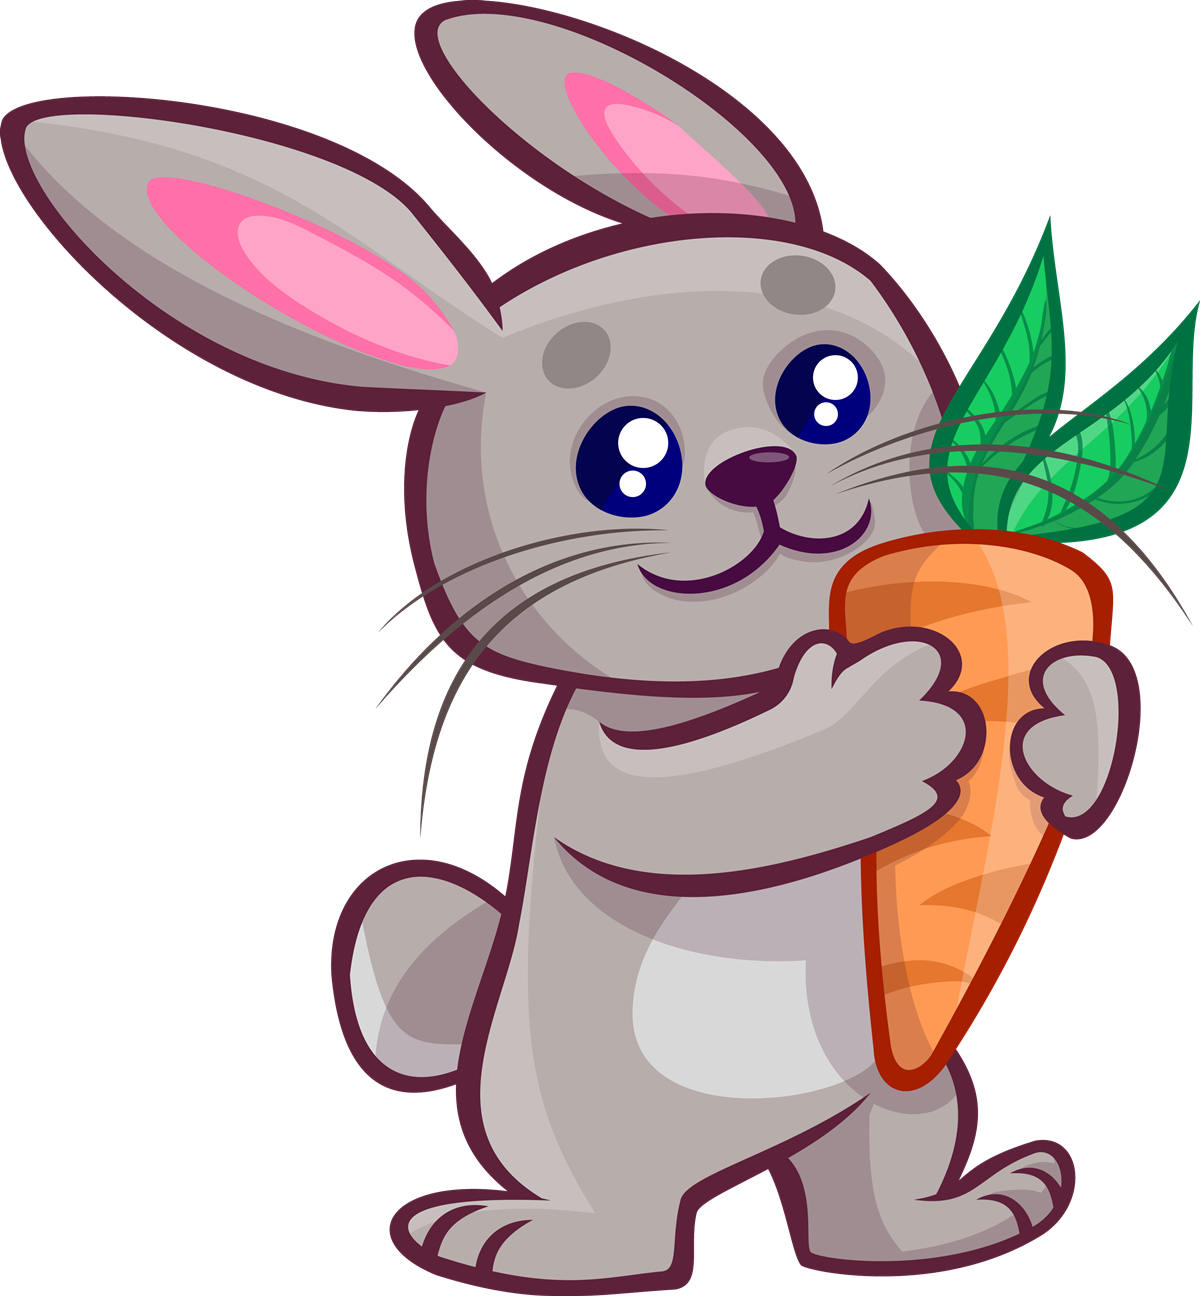 Rabbit clipart. Roger at getdrawings com